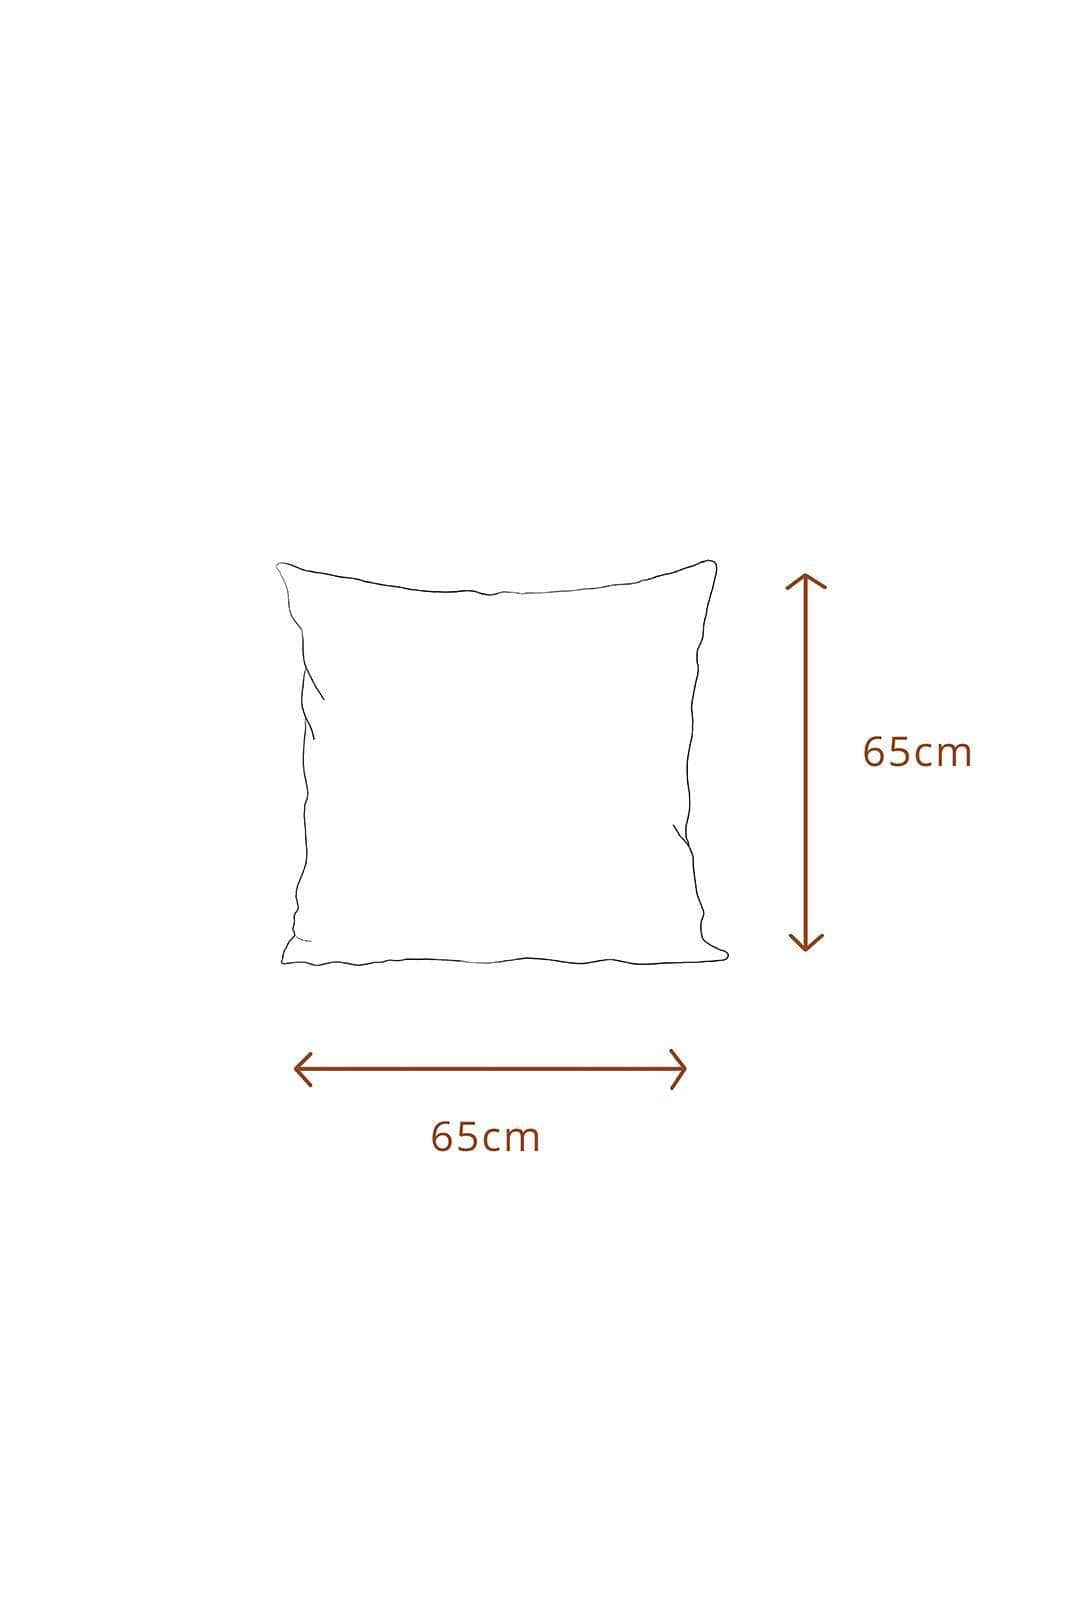 arkitaip Pillowslips 65 x 65cm / White The Ruffled Casita Linen Pillowslips Set in White